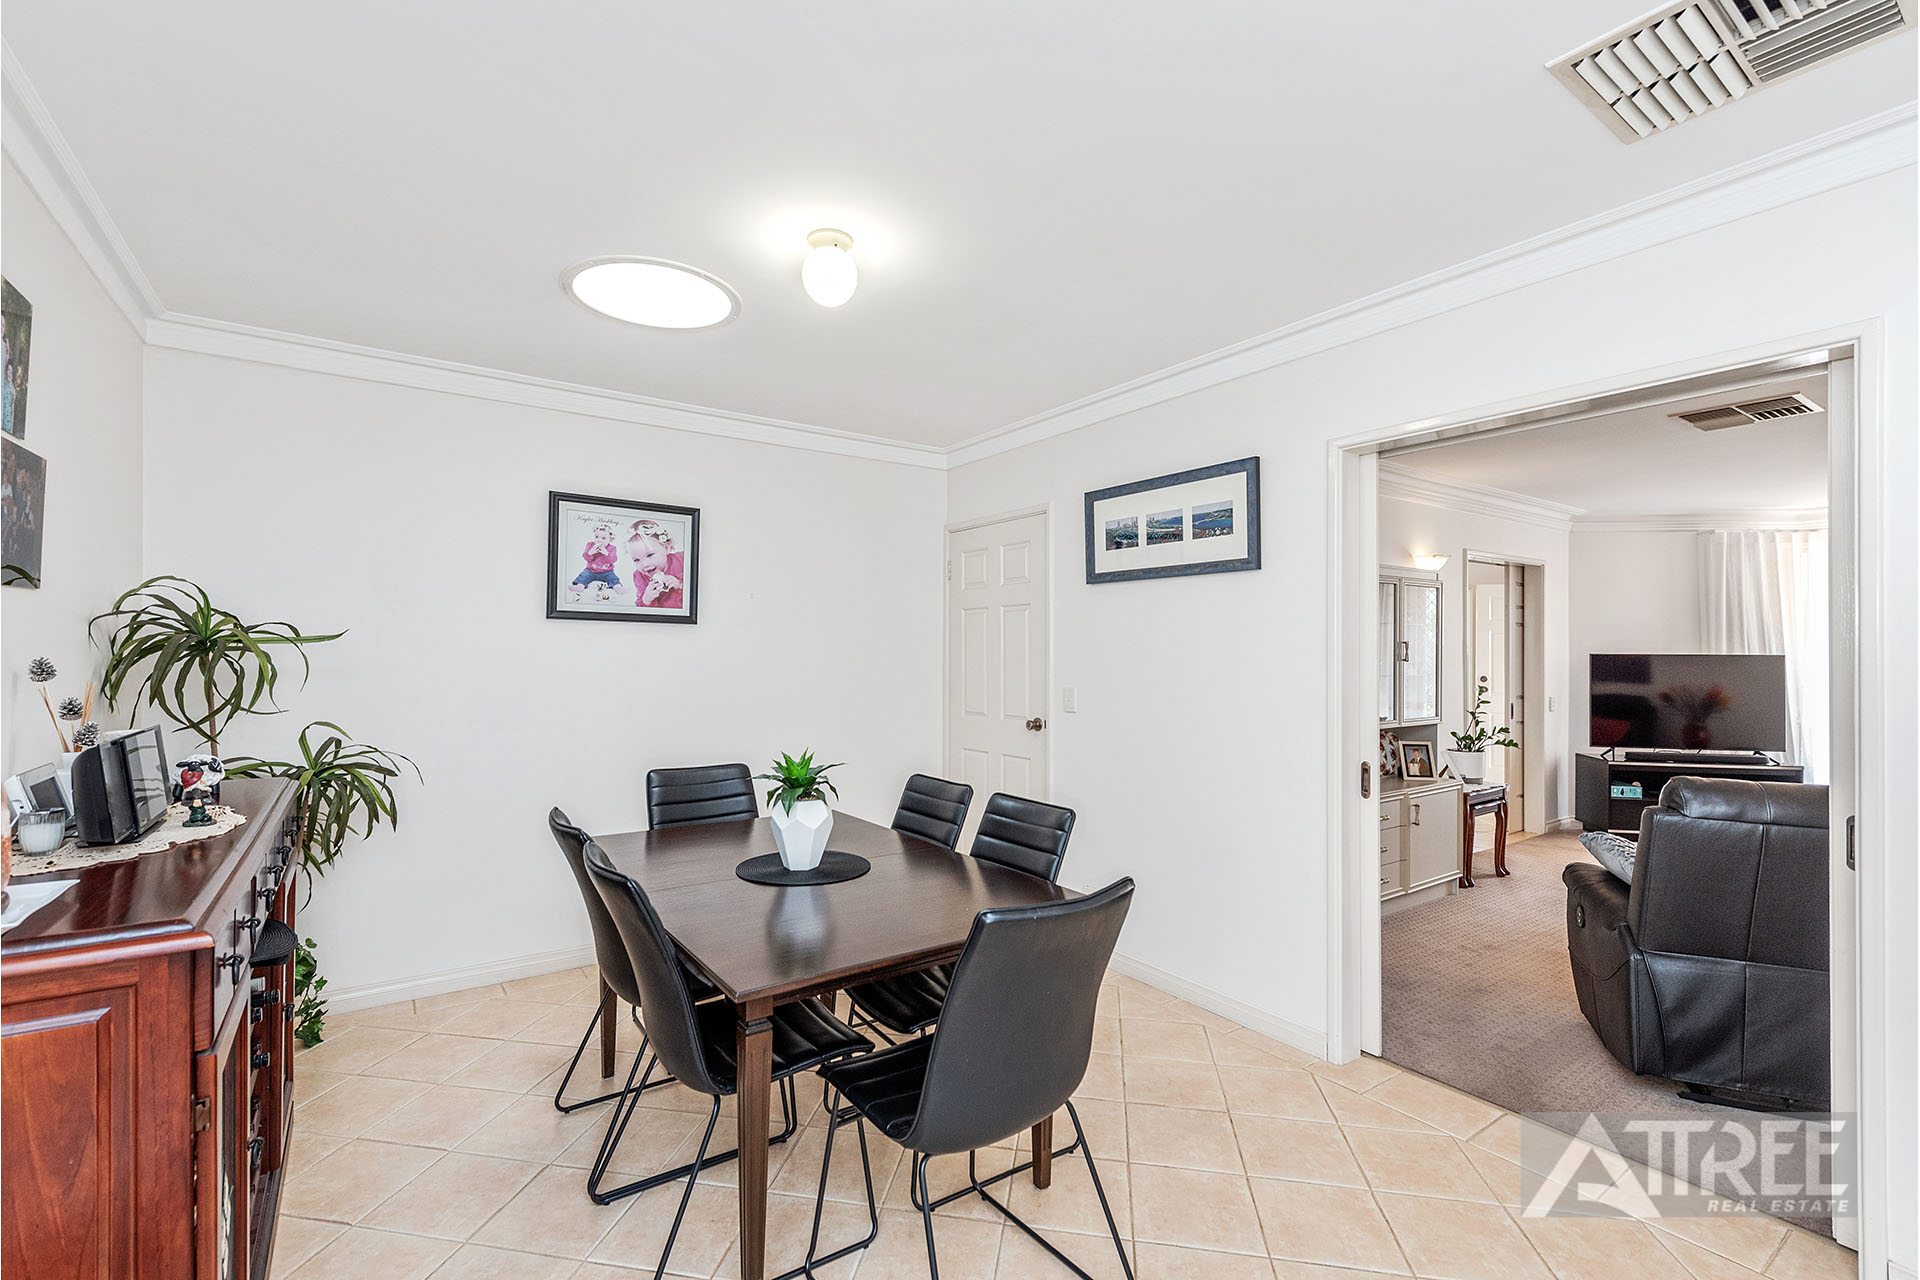 Property for sale in WILLETTON, 1/101 Portcullis Drive : Attree Real Estate